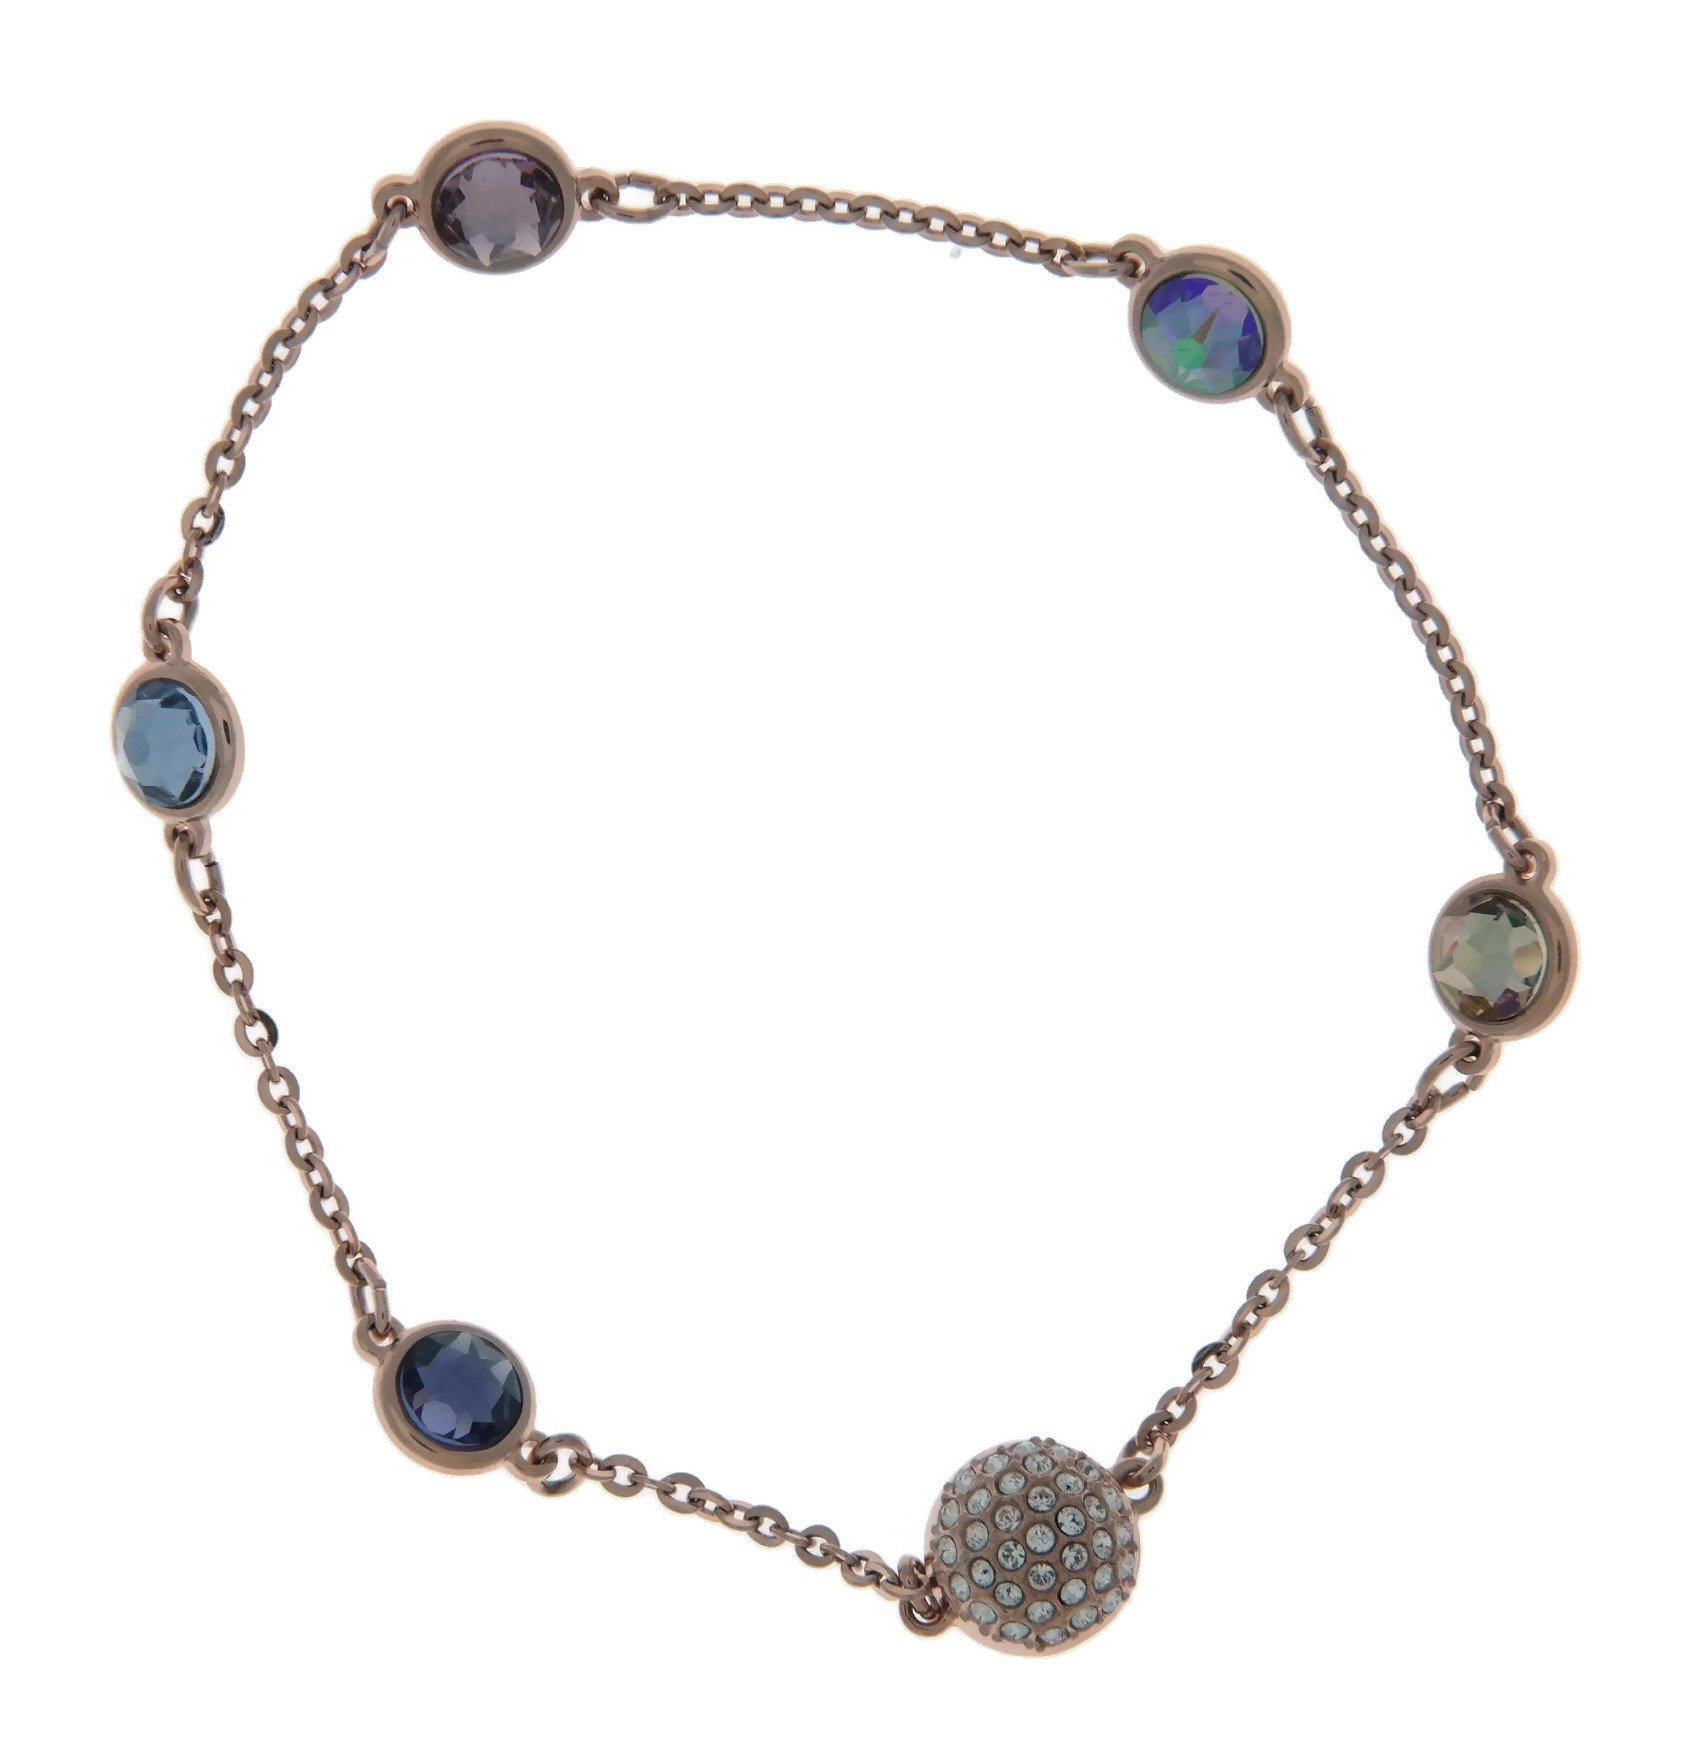 Swarovski Remix Collection Rose Gold-Plated Multi-Colored Crystal Strand, Size Medium